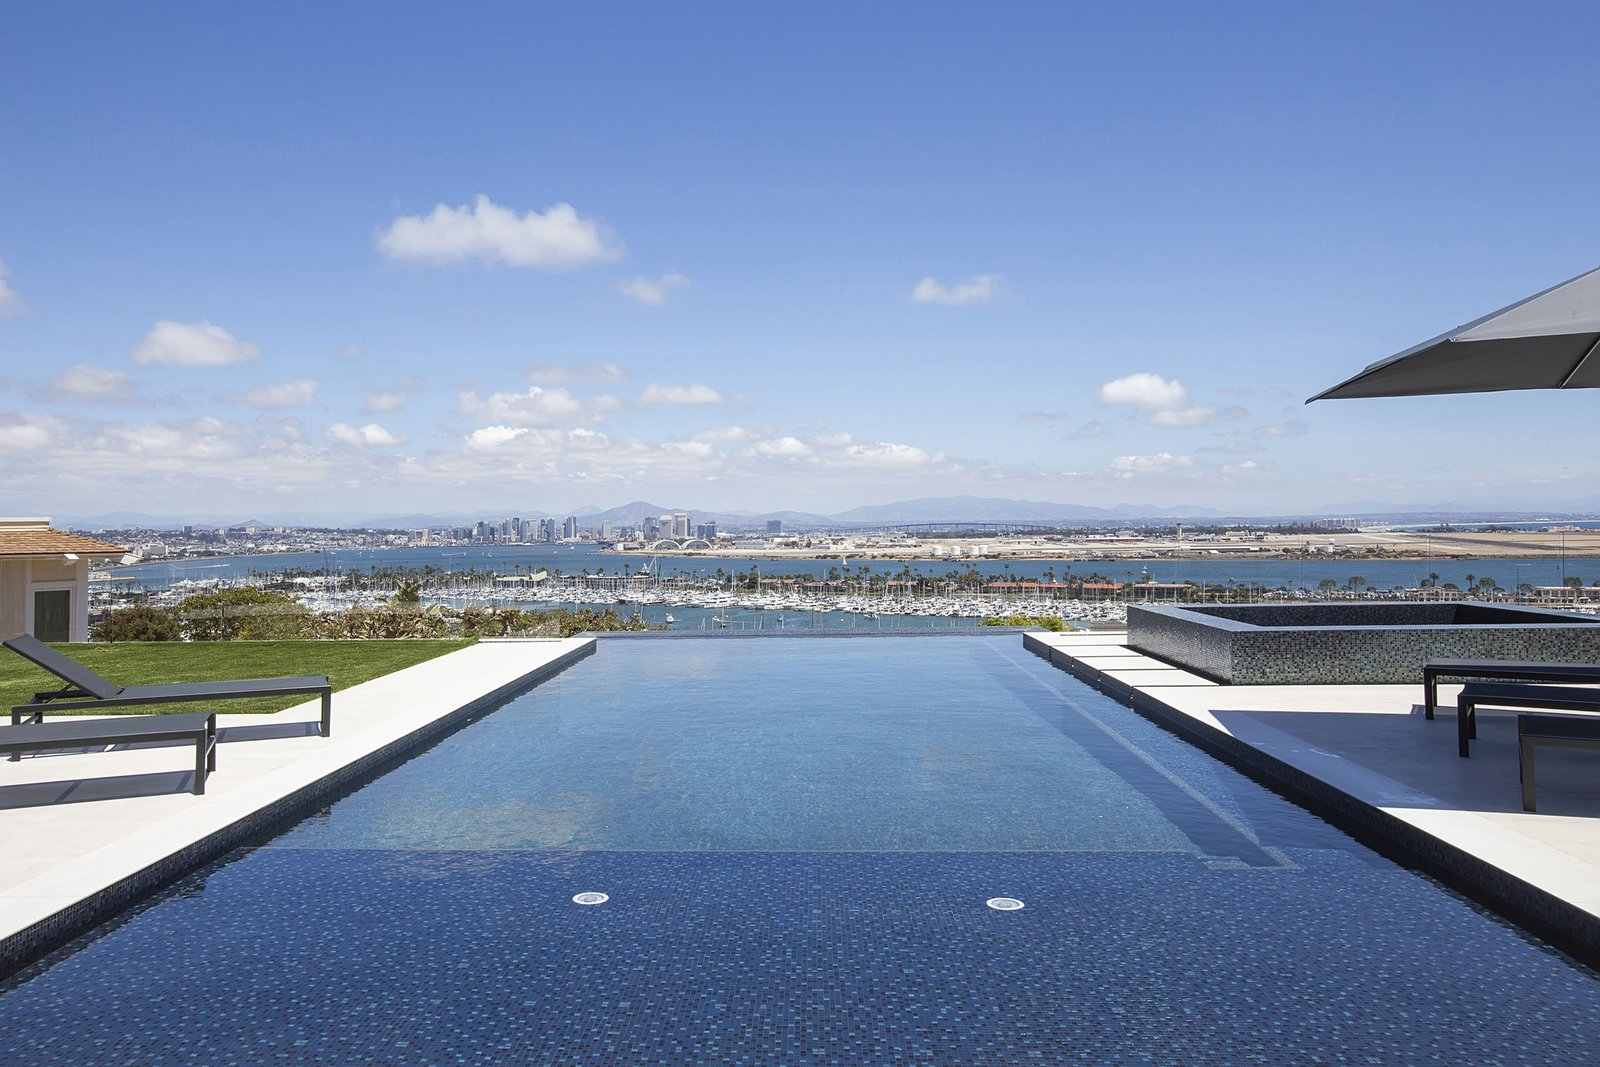 Outdoor, Large, Side Yard, Large, Walkways, Infinity, and Grass The infinity pool overlooks stunning views of Mexico and the San Diego skyline and harbor.  Best Outdoor Large Side Yard Photos from A Renovated Midcentury in San Diego Is Sharp and Sustainable